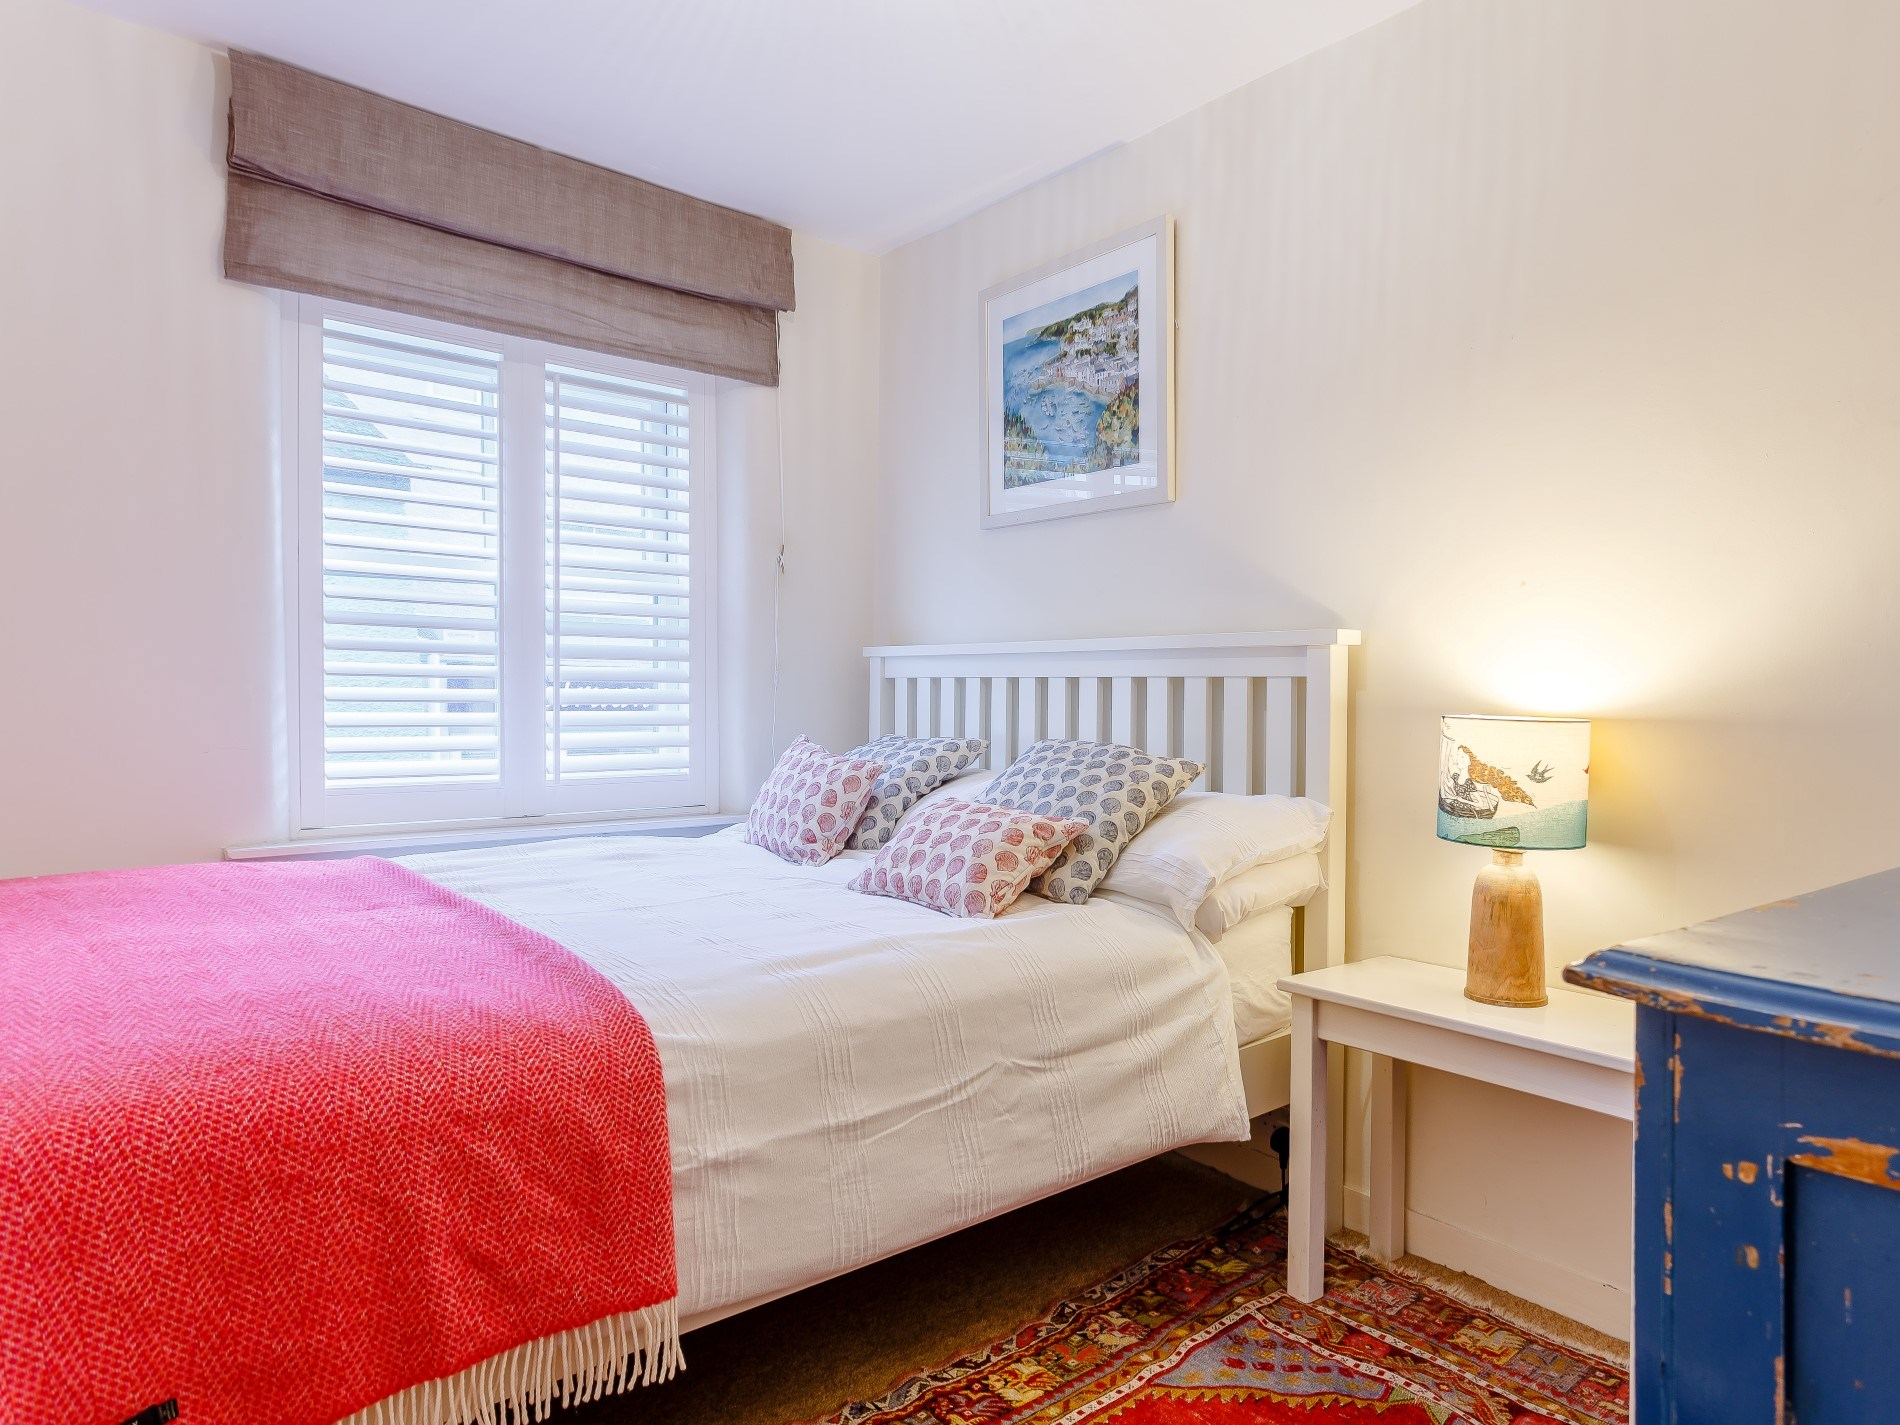 3 Bedroom Cottage in South Cornwall, Cornwall